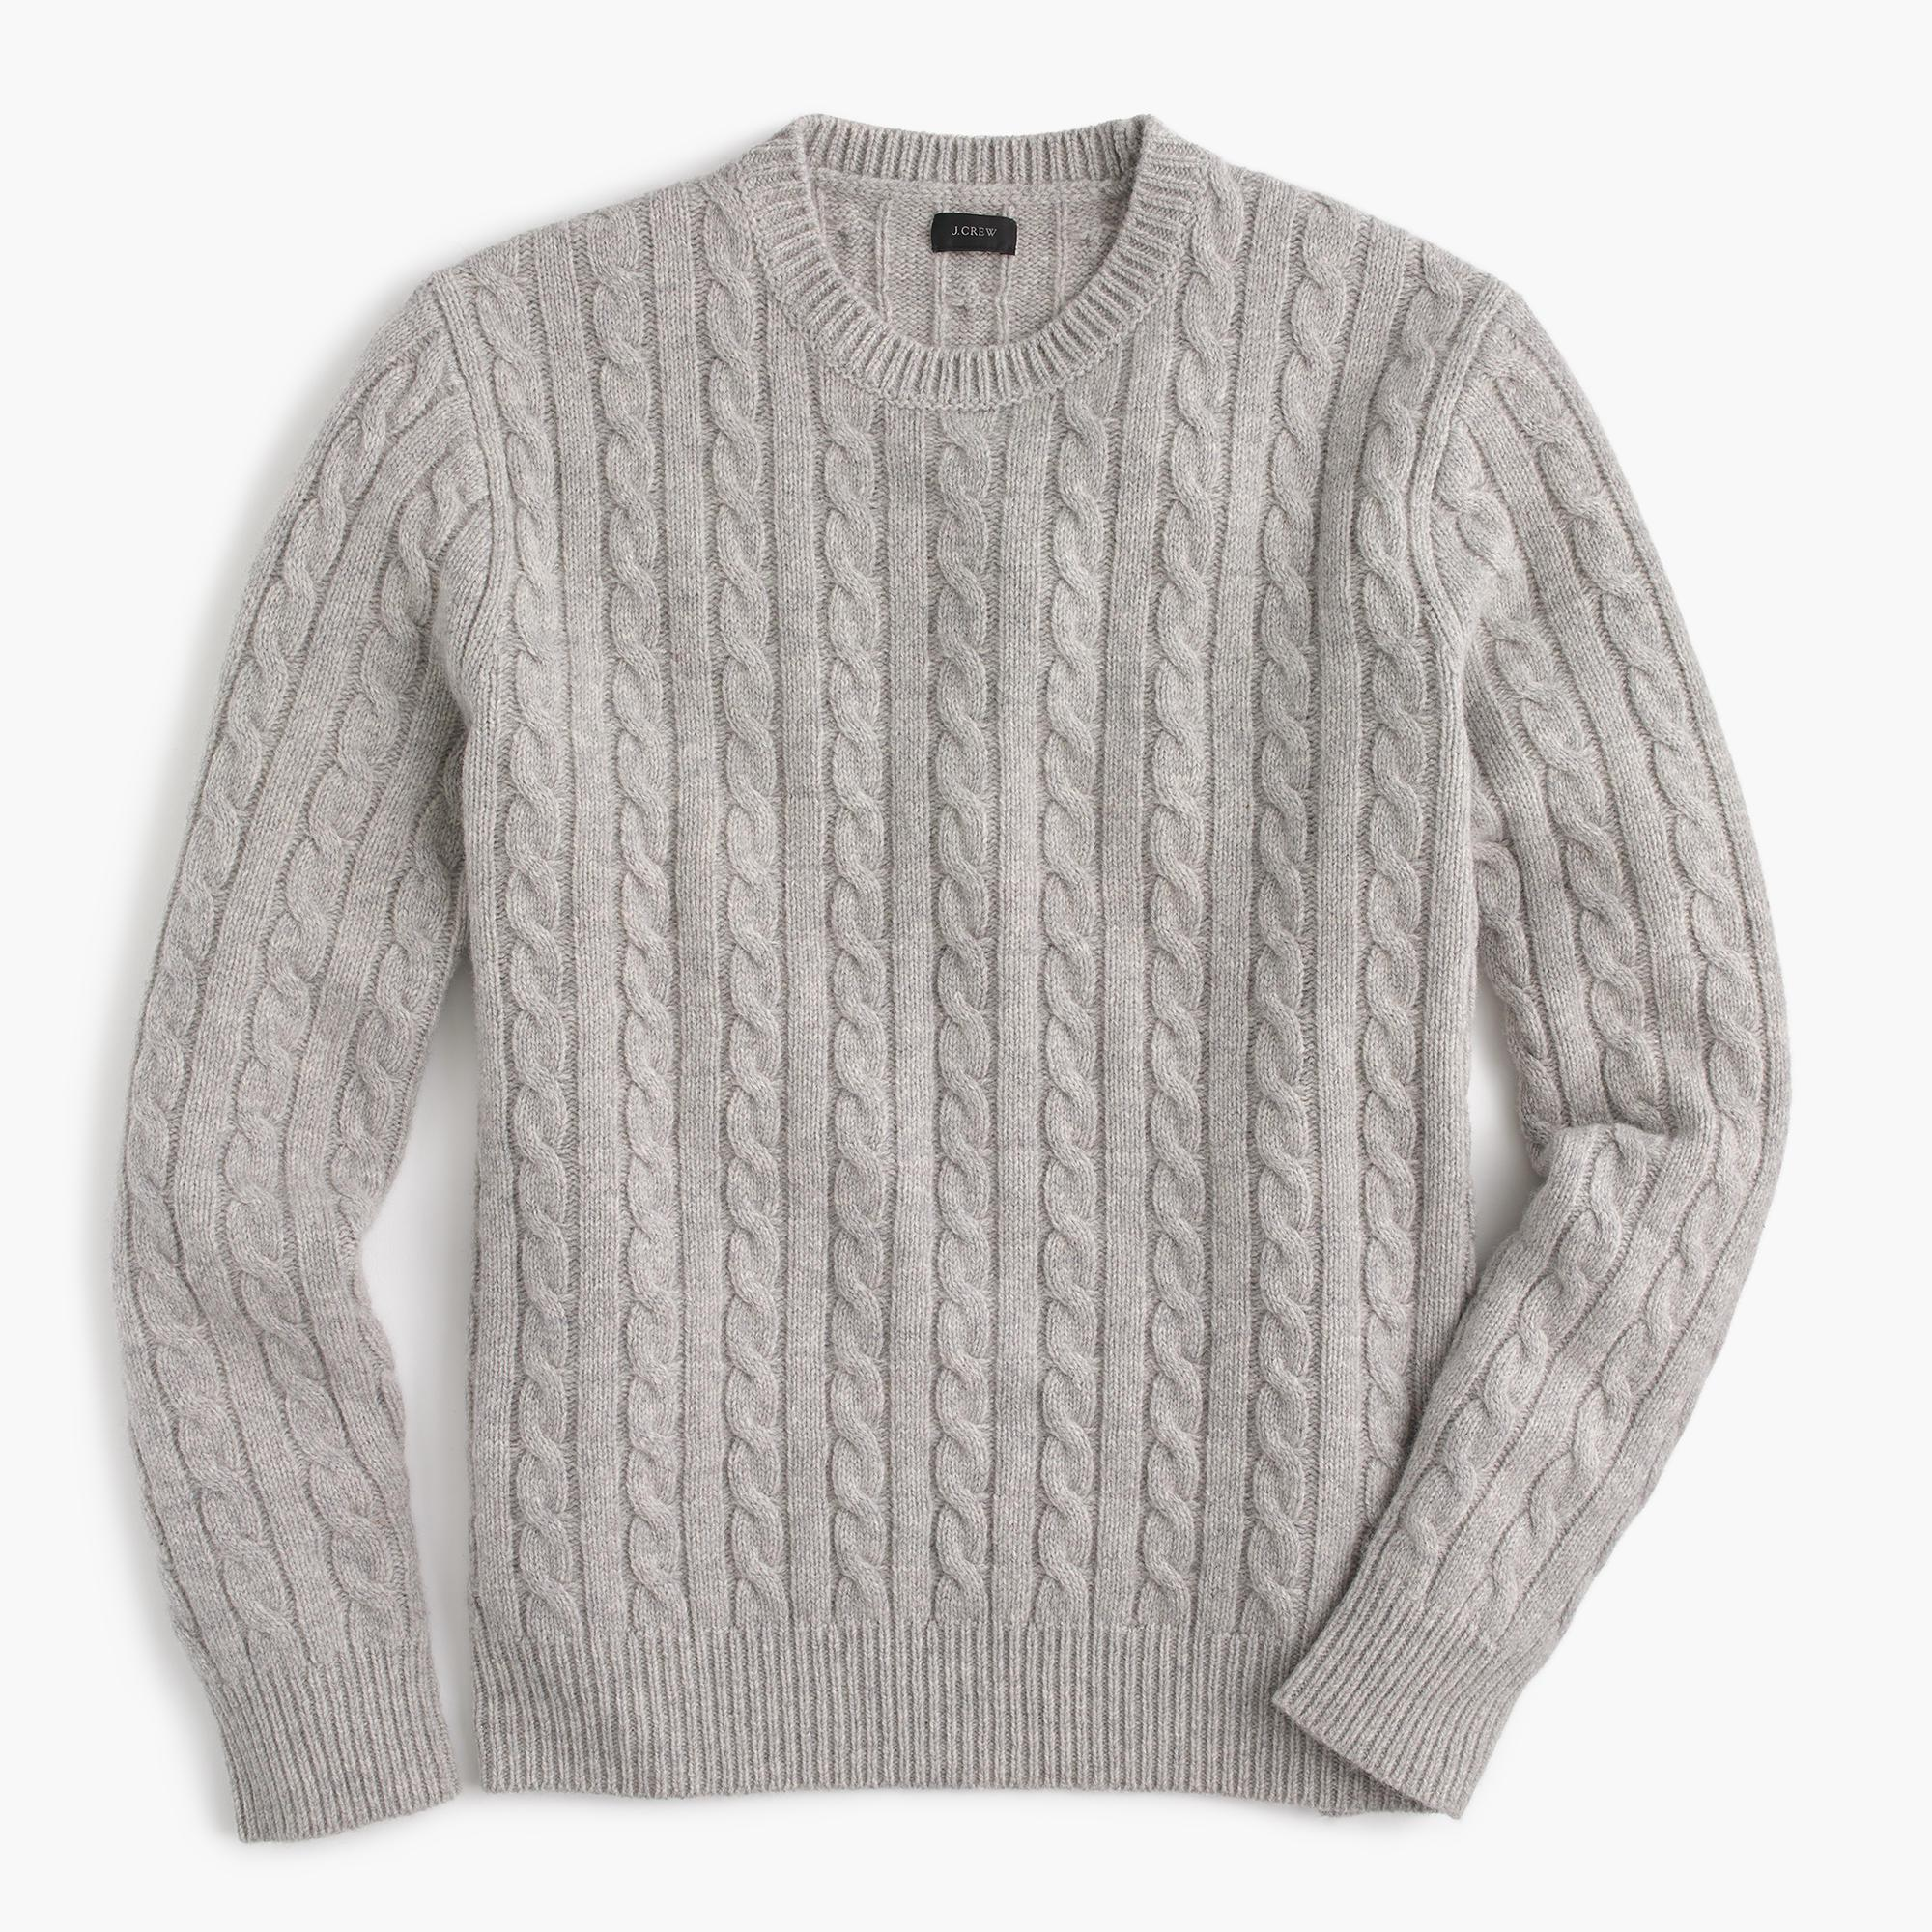 c50537132 Lyst - J.Crew Lambswool Crewneck Sweater In Cable-knit in Gray for Men